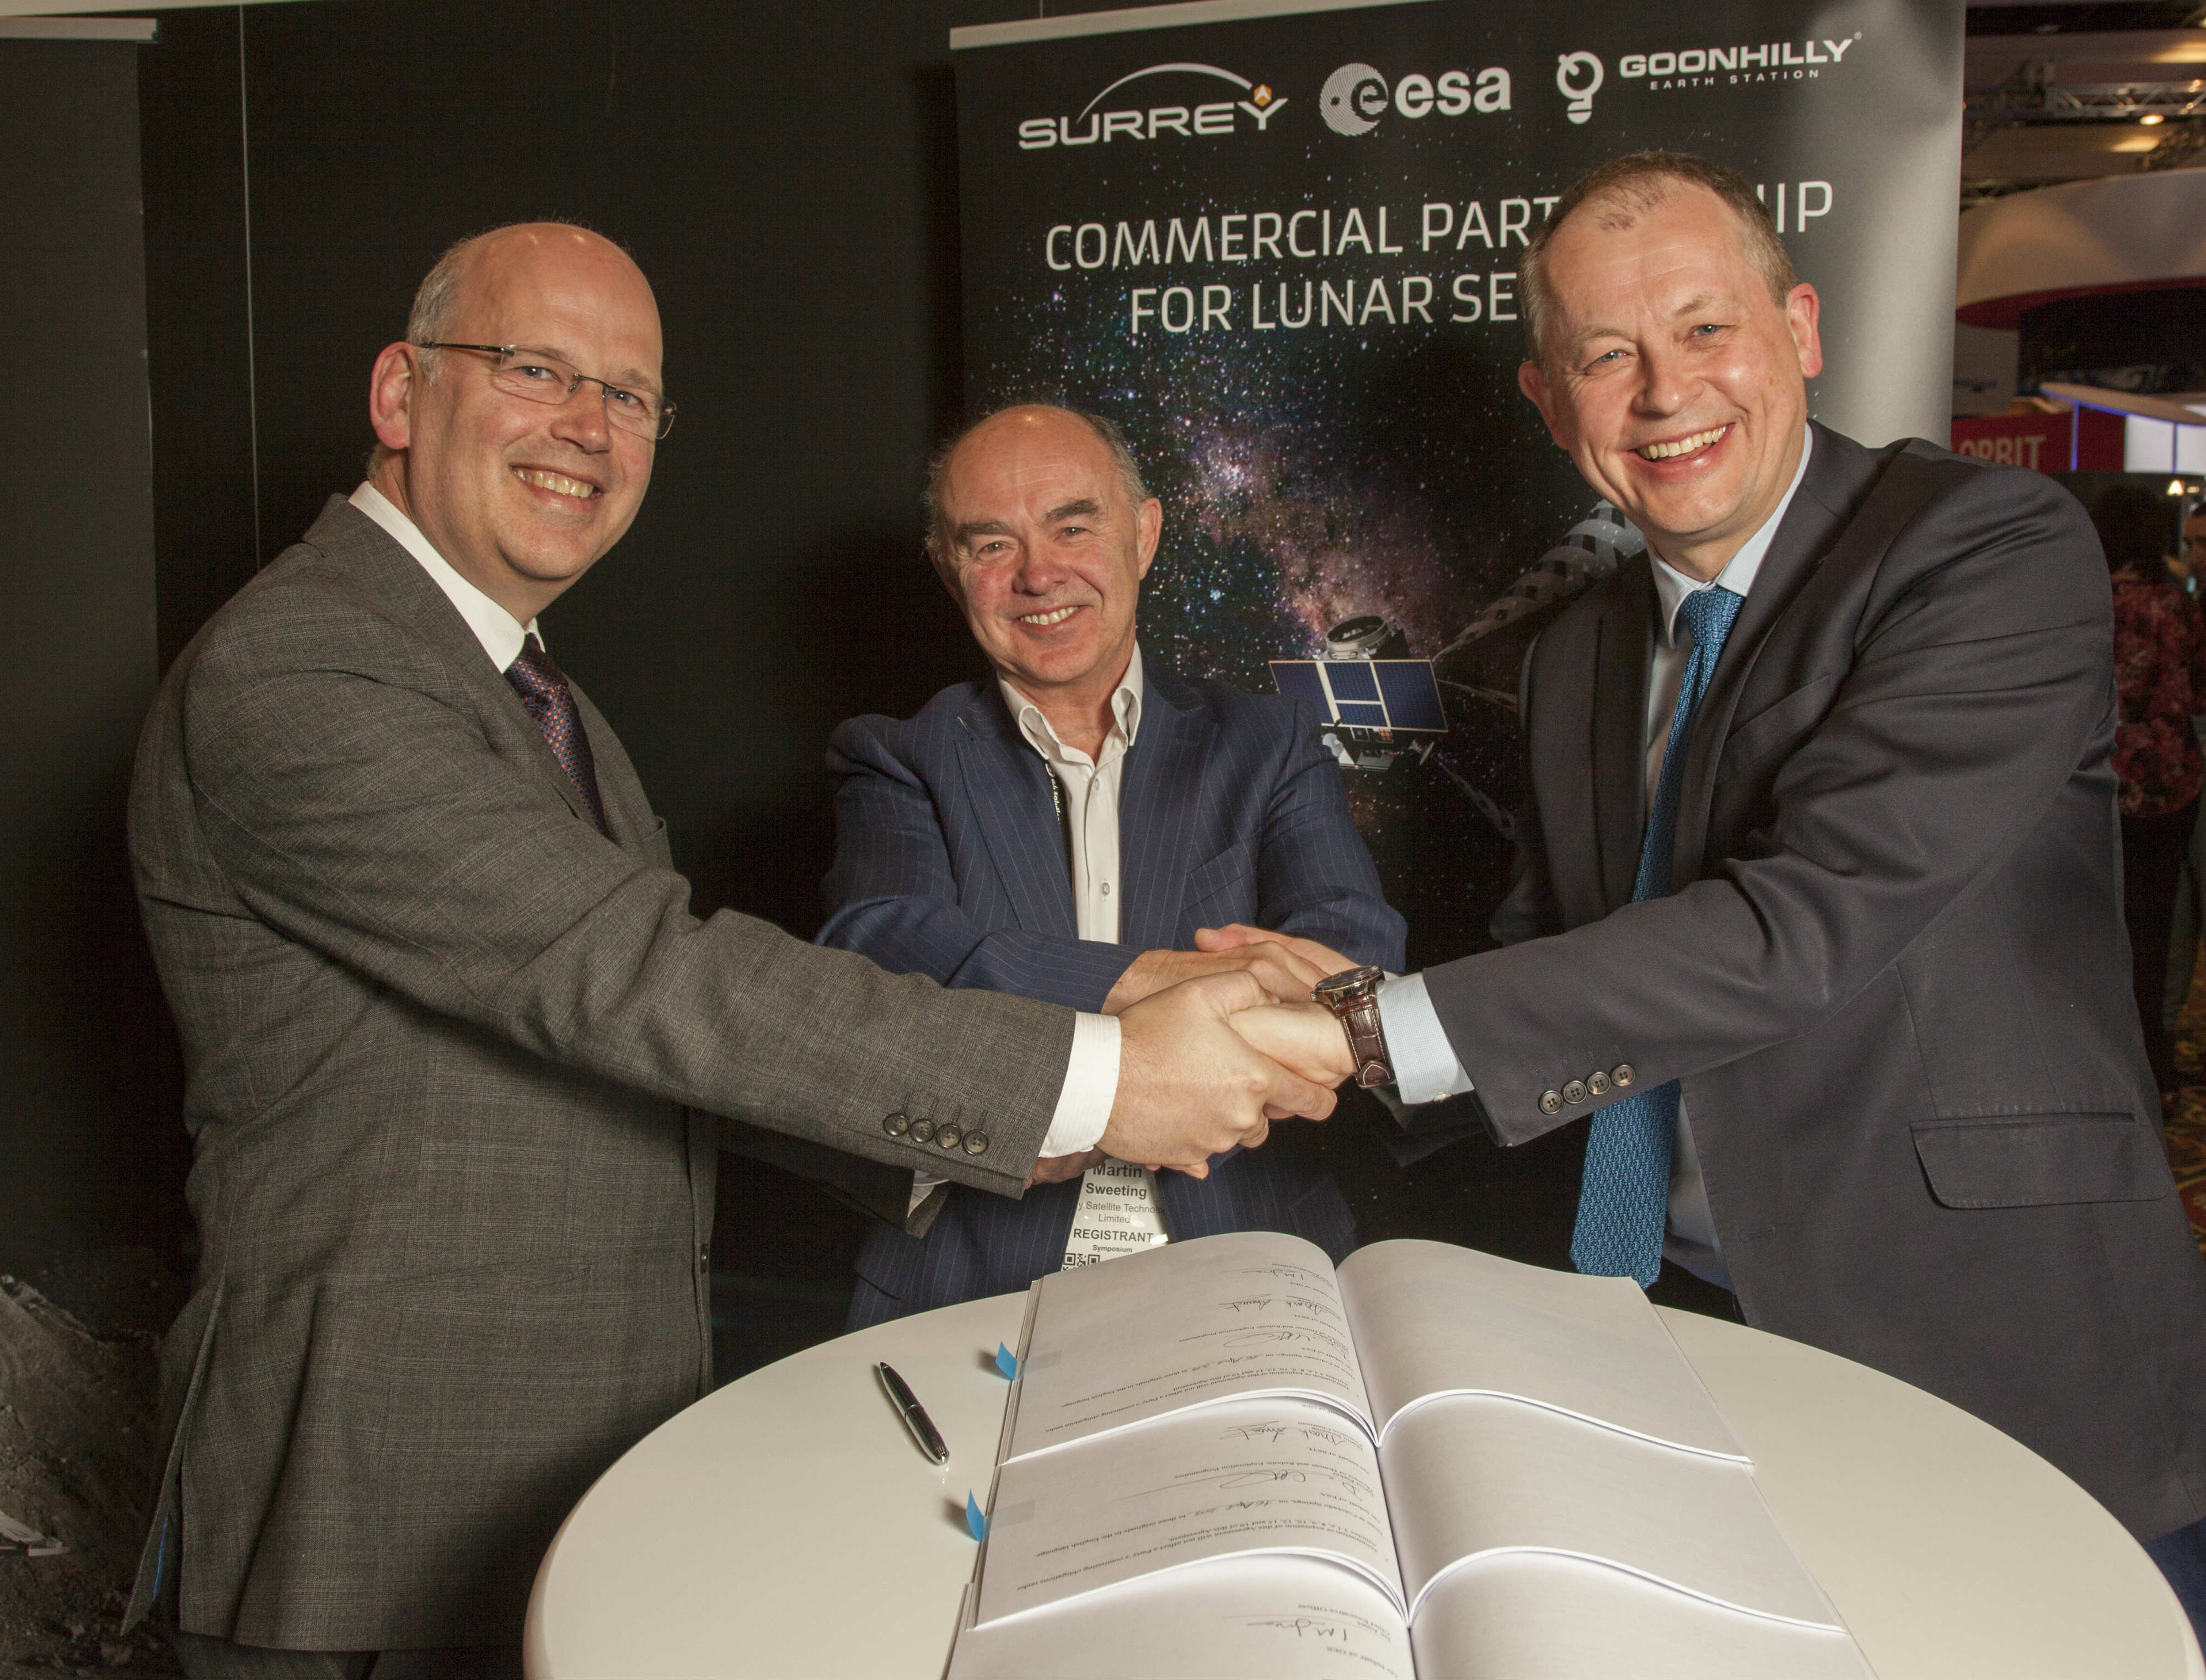 Men shaking hands after signing collaboration agreement with Goonhilly.